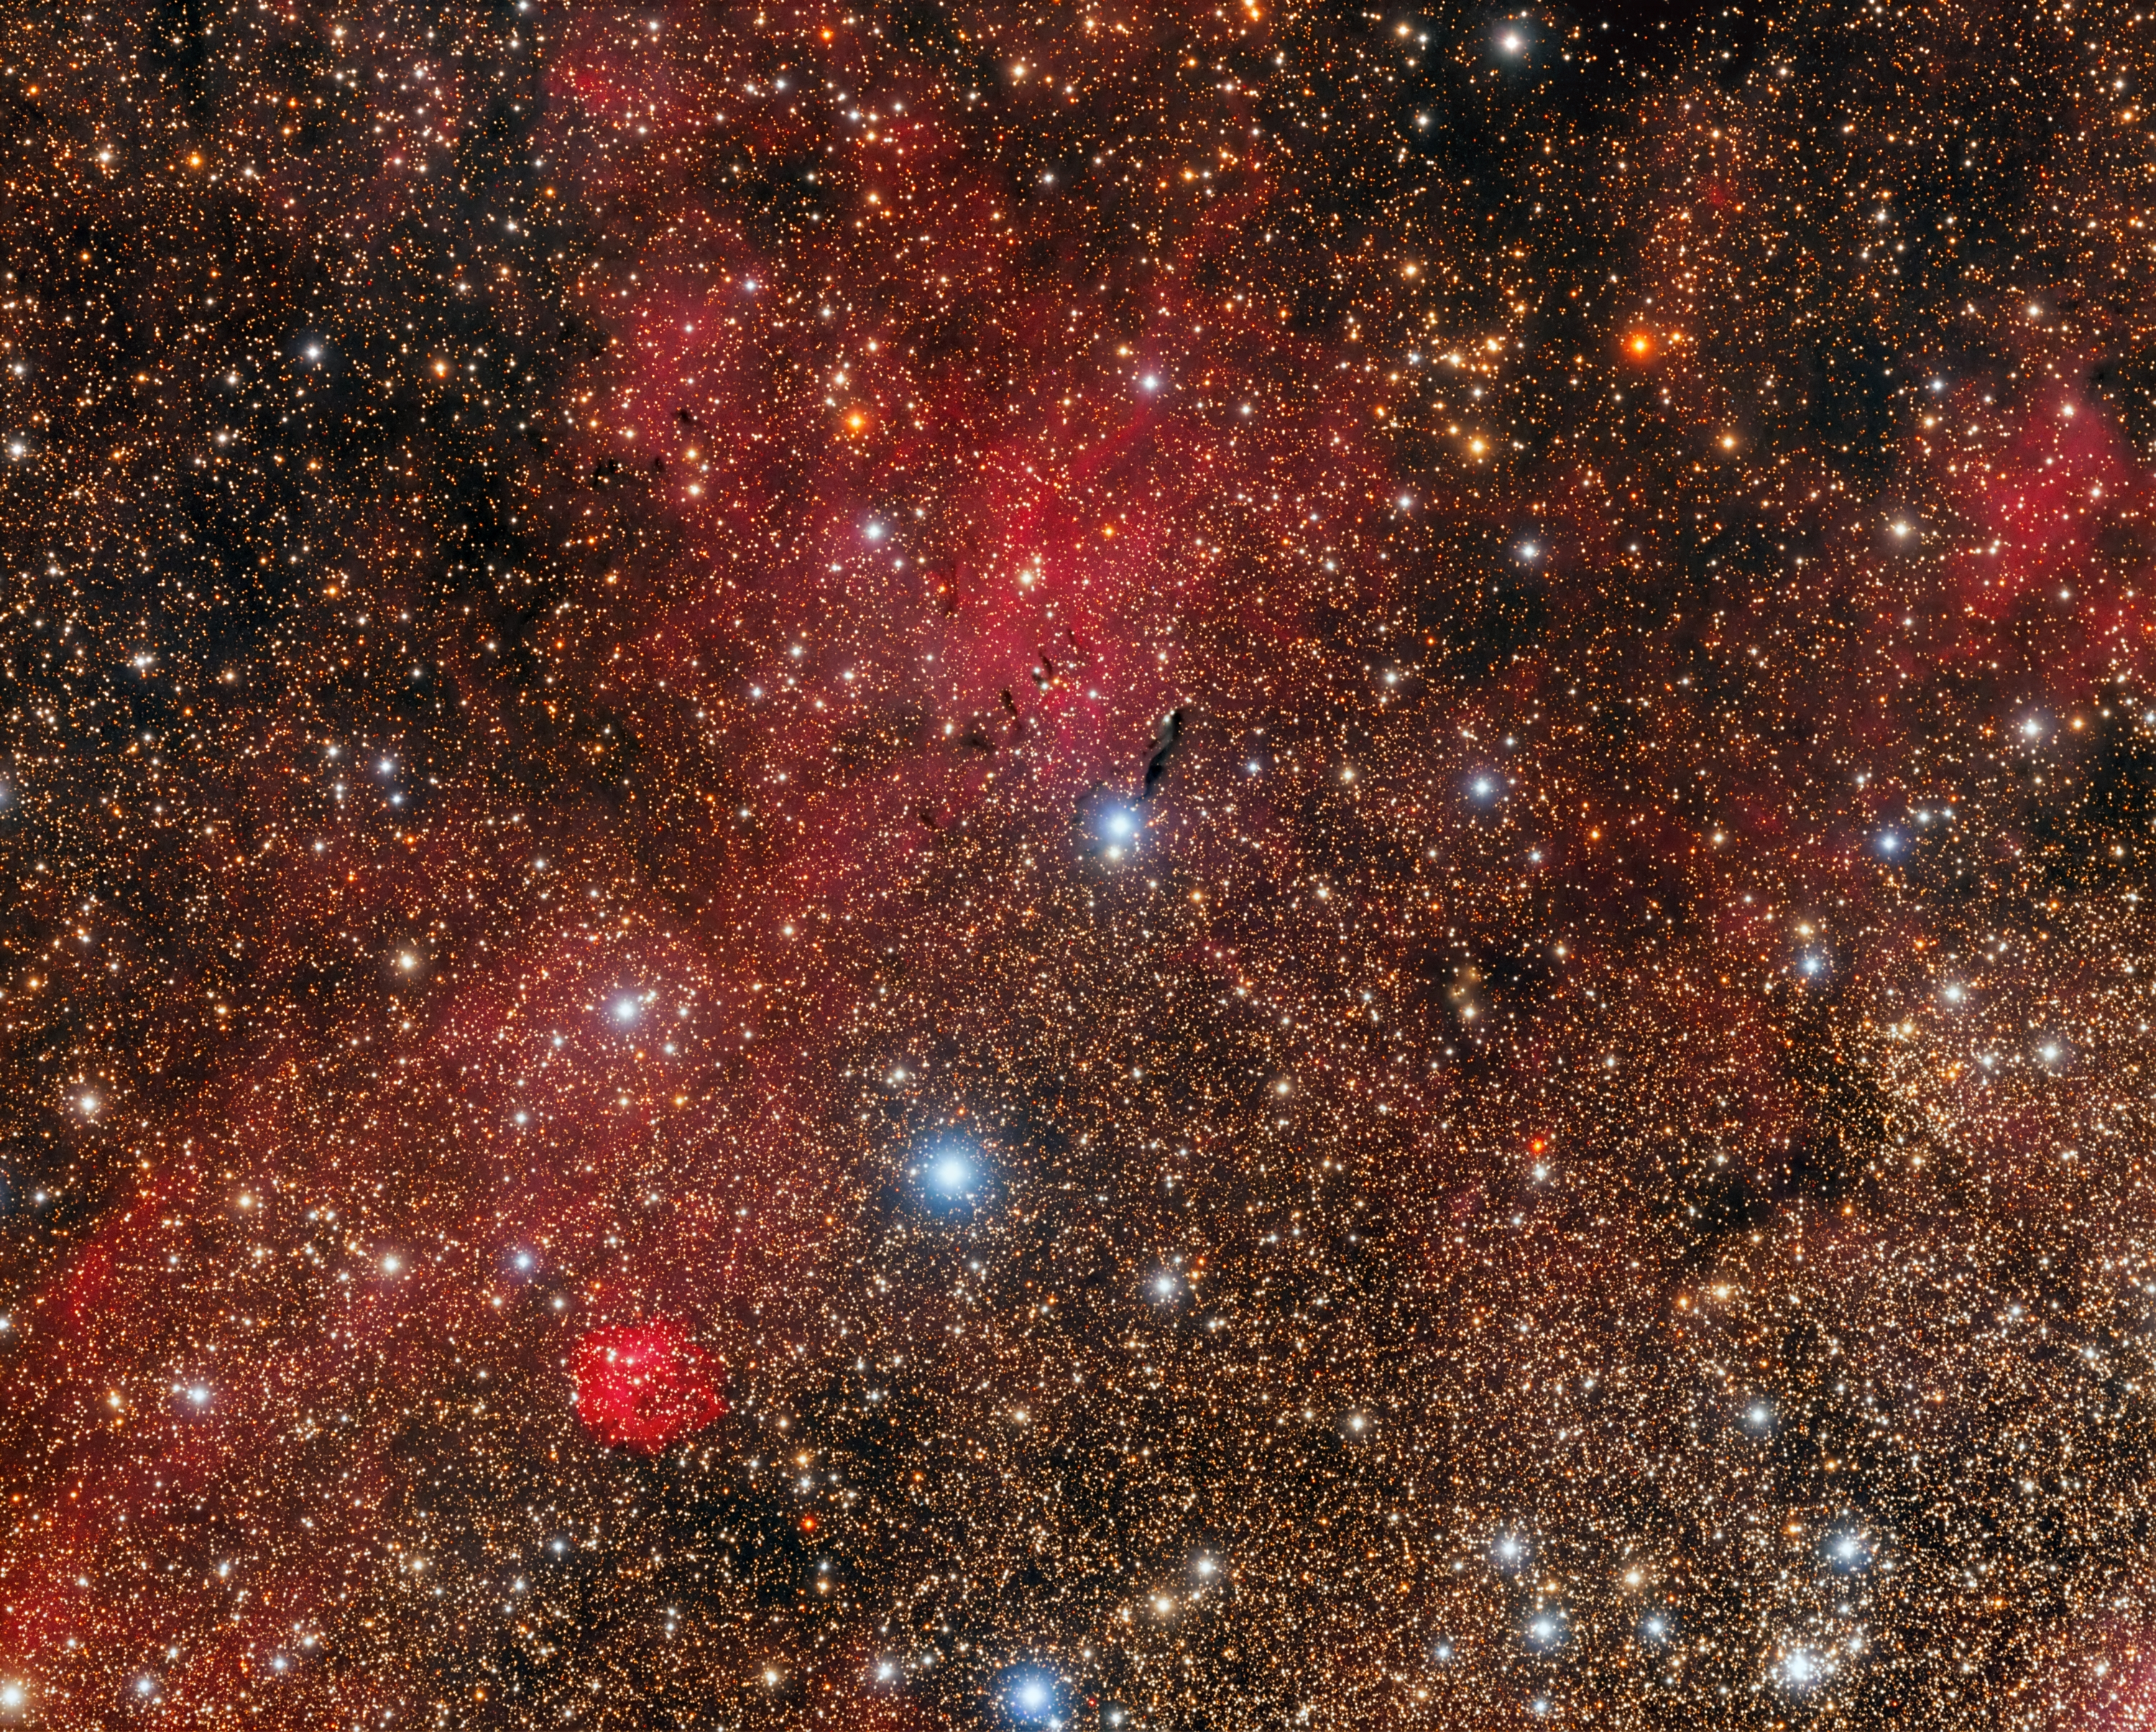 SH2 104,LBN 195,DWB 18, GM 1-27 (Cygnus).jpg - SH2-104,LBN 195,DWB 18,GM 1-27 (Cygnus)* June-July 2019 * Telescope CFF 135 (f/6.7 , 930mm) * ASA DDM85 mount * Moravian G3 16200 EC CCD* Baader LRGB filter set * L: 455 minutes R: 574 min G: 504min  B: 566 min *  Subframes unguided and acquired Autoslew & Sequence*Sharpless 104 (LBN 195, DWB 18) is a bright, circular emission nebula approximately 13,000 light-years away in Cygnus. The stars 'in' the nebula are cataloged as open cluster Dolidze 4.  The Sh2104 region is a good illustration of the `collect and collapse' model for star formation triggered by the expansion of an H II region.In the center of image , the nebulous object GM 1-27 on the basis of direct photographs and spectra obtained with the 6-m telescope shows that it is a cometary nebula with mixed (C + E) spectrum. The high negative radial velocities of the lines (/minus/150 to /minus/200 km/sec) indicate a directed outflow of matter from the central star (which is not directly observable).DWB 18 is an emission nebula located about in the center of the great dark rift that goes down much of Cygnus.Thanks to Mr. Sakib Rasool for suggesting this image.Credits : Astrophysics 28(3):356-359 · May 1988 (Tigran Yu.Magakian)Antonio F. Sanchez.